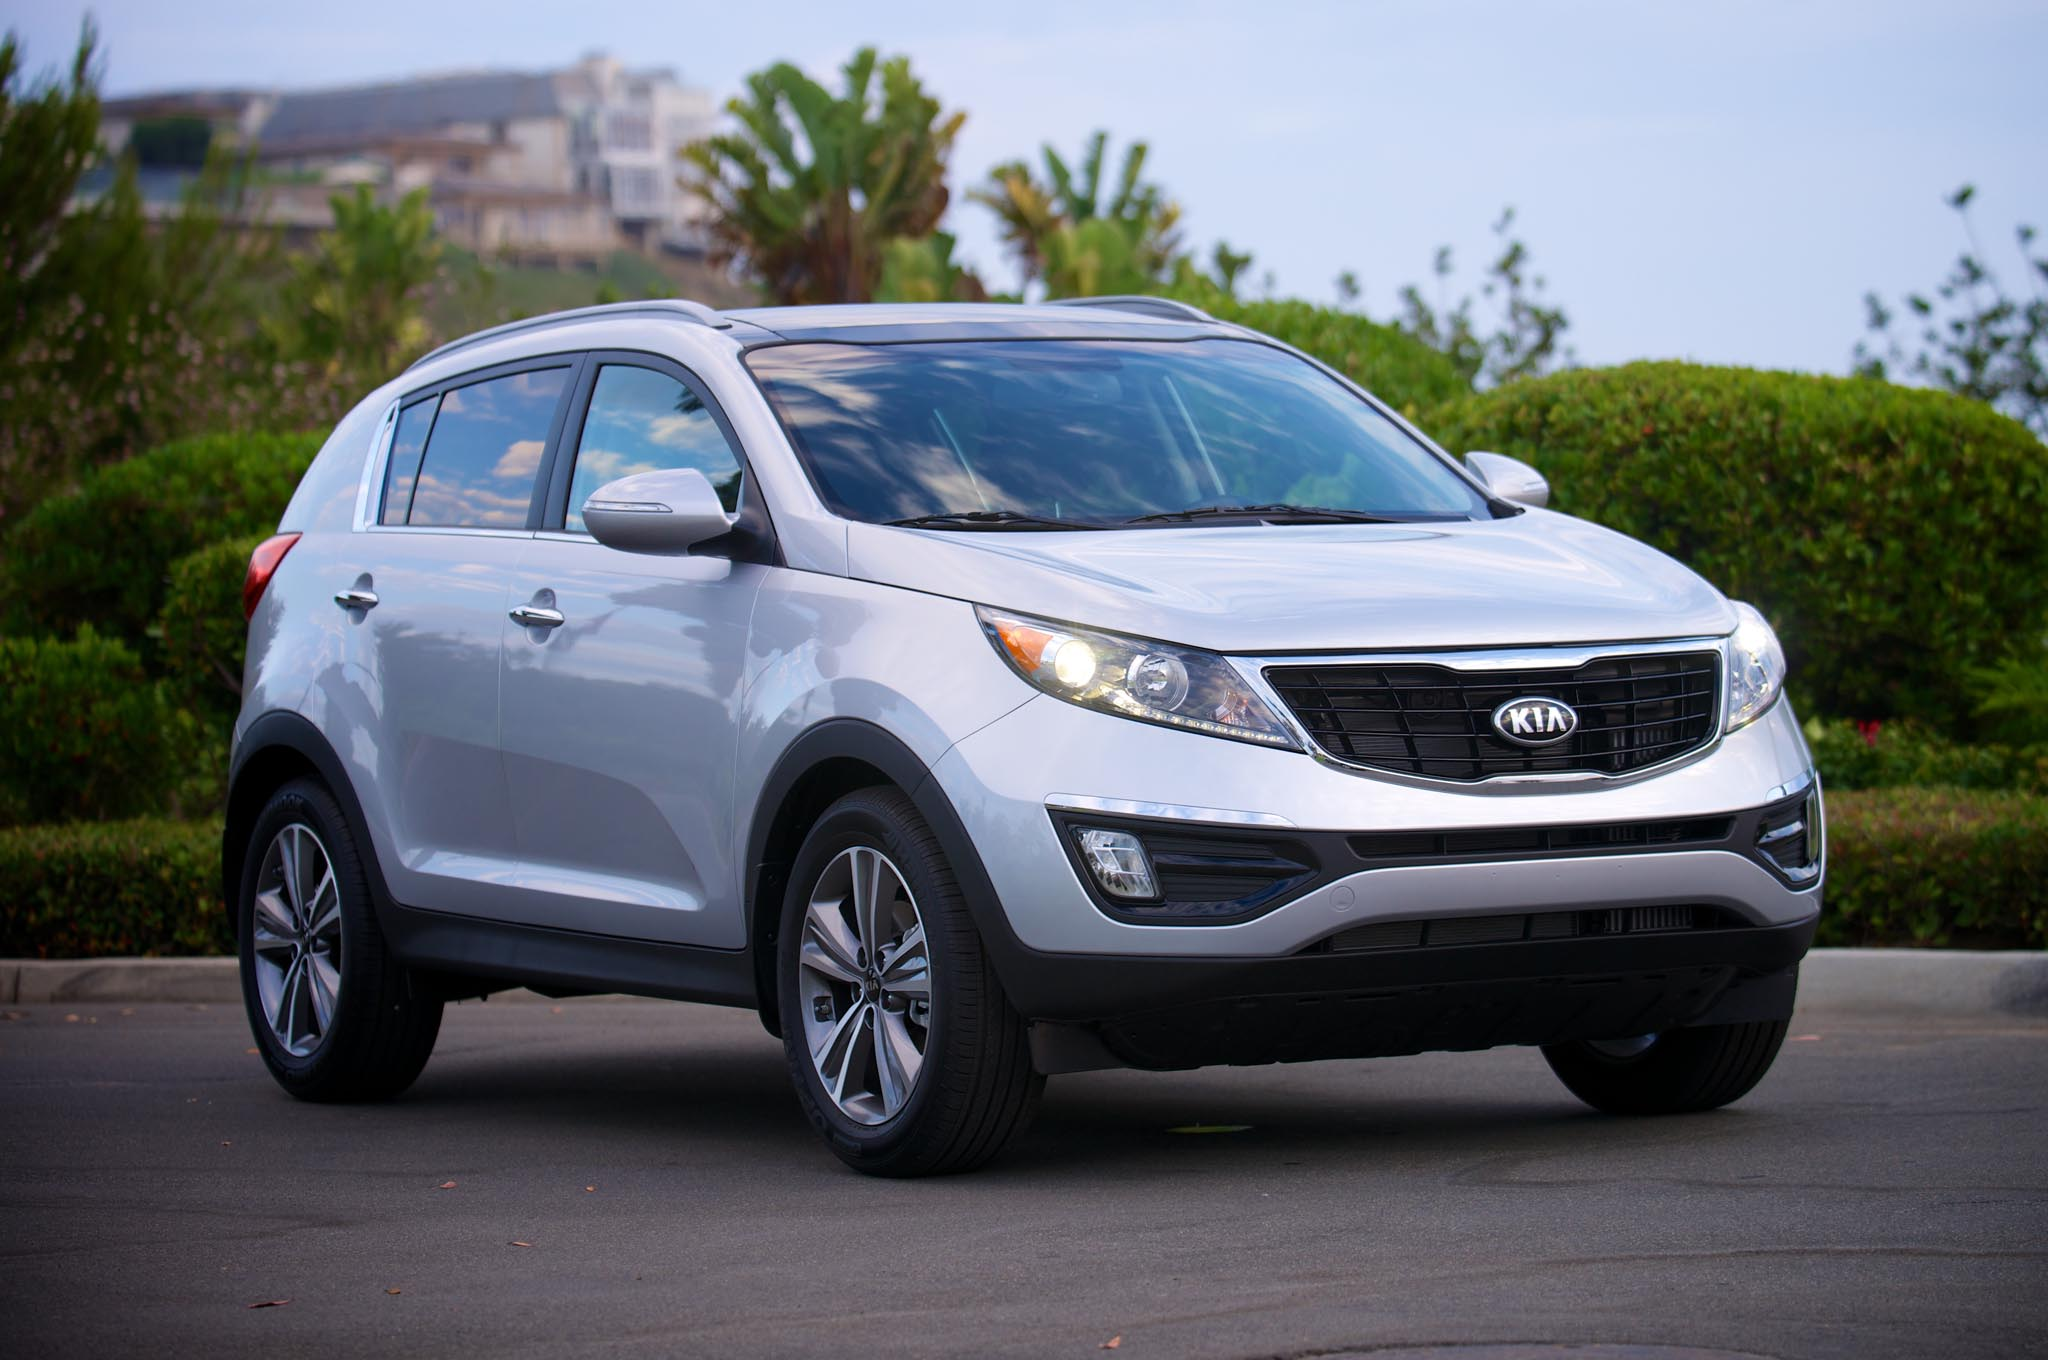 2014 Kia Sportage Front Three Quarters 11